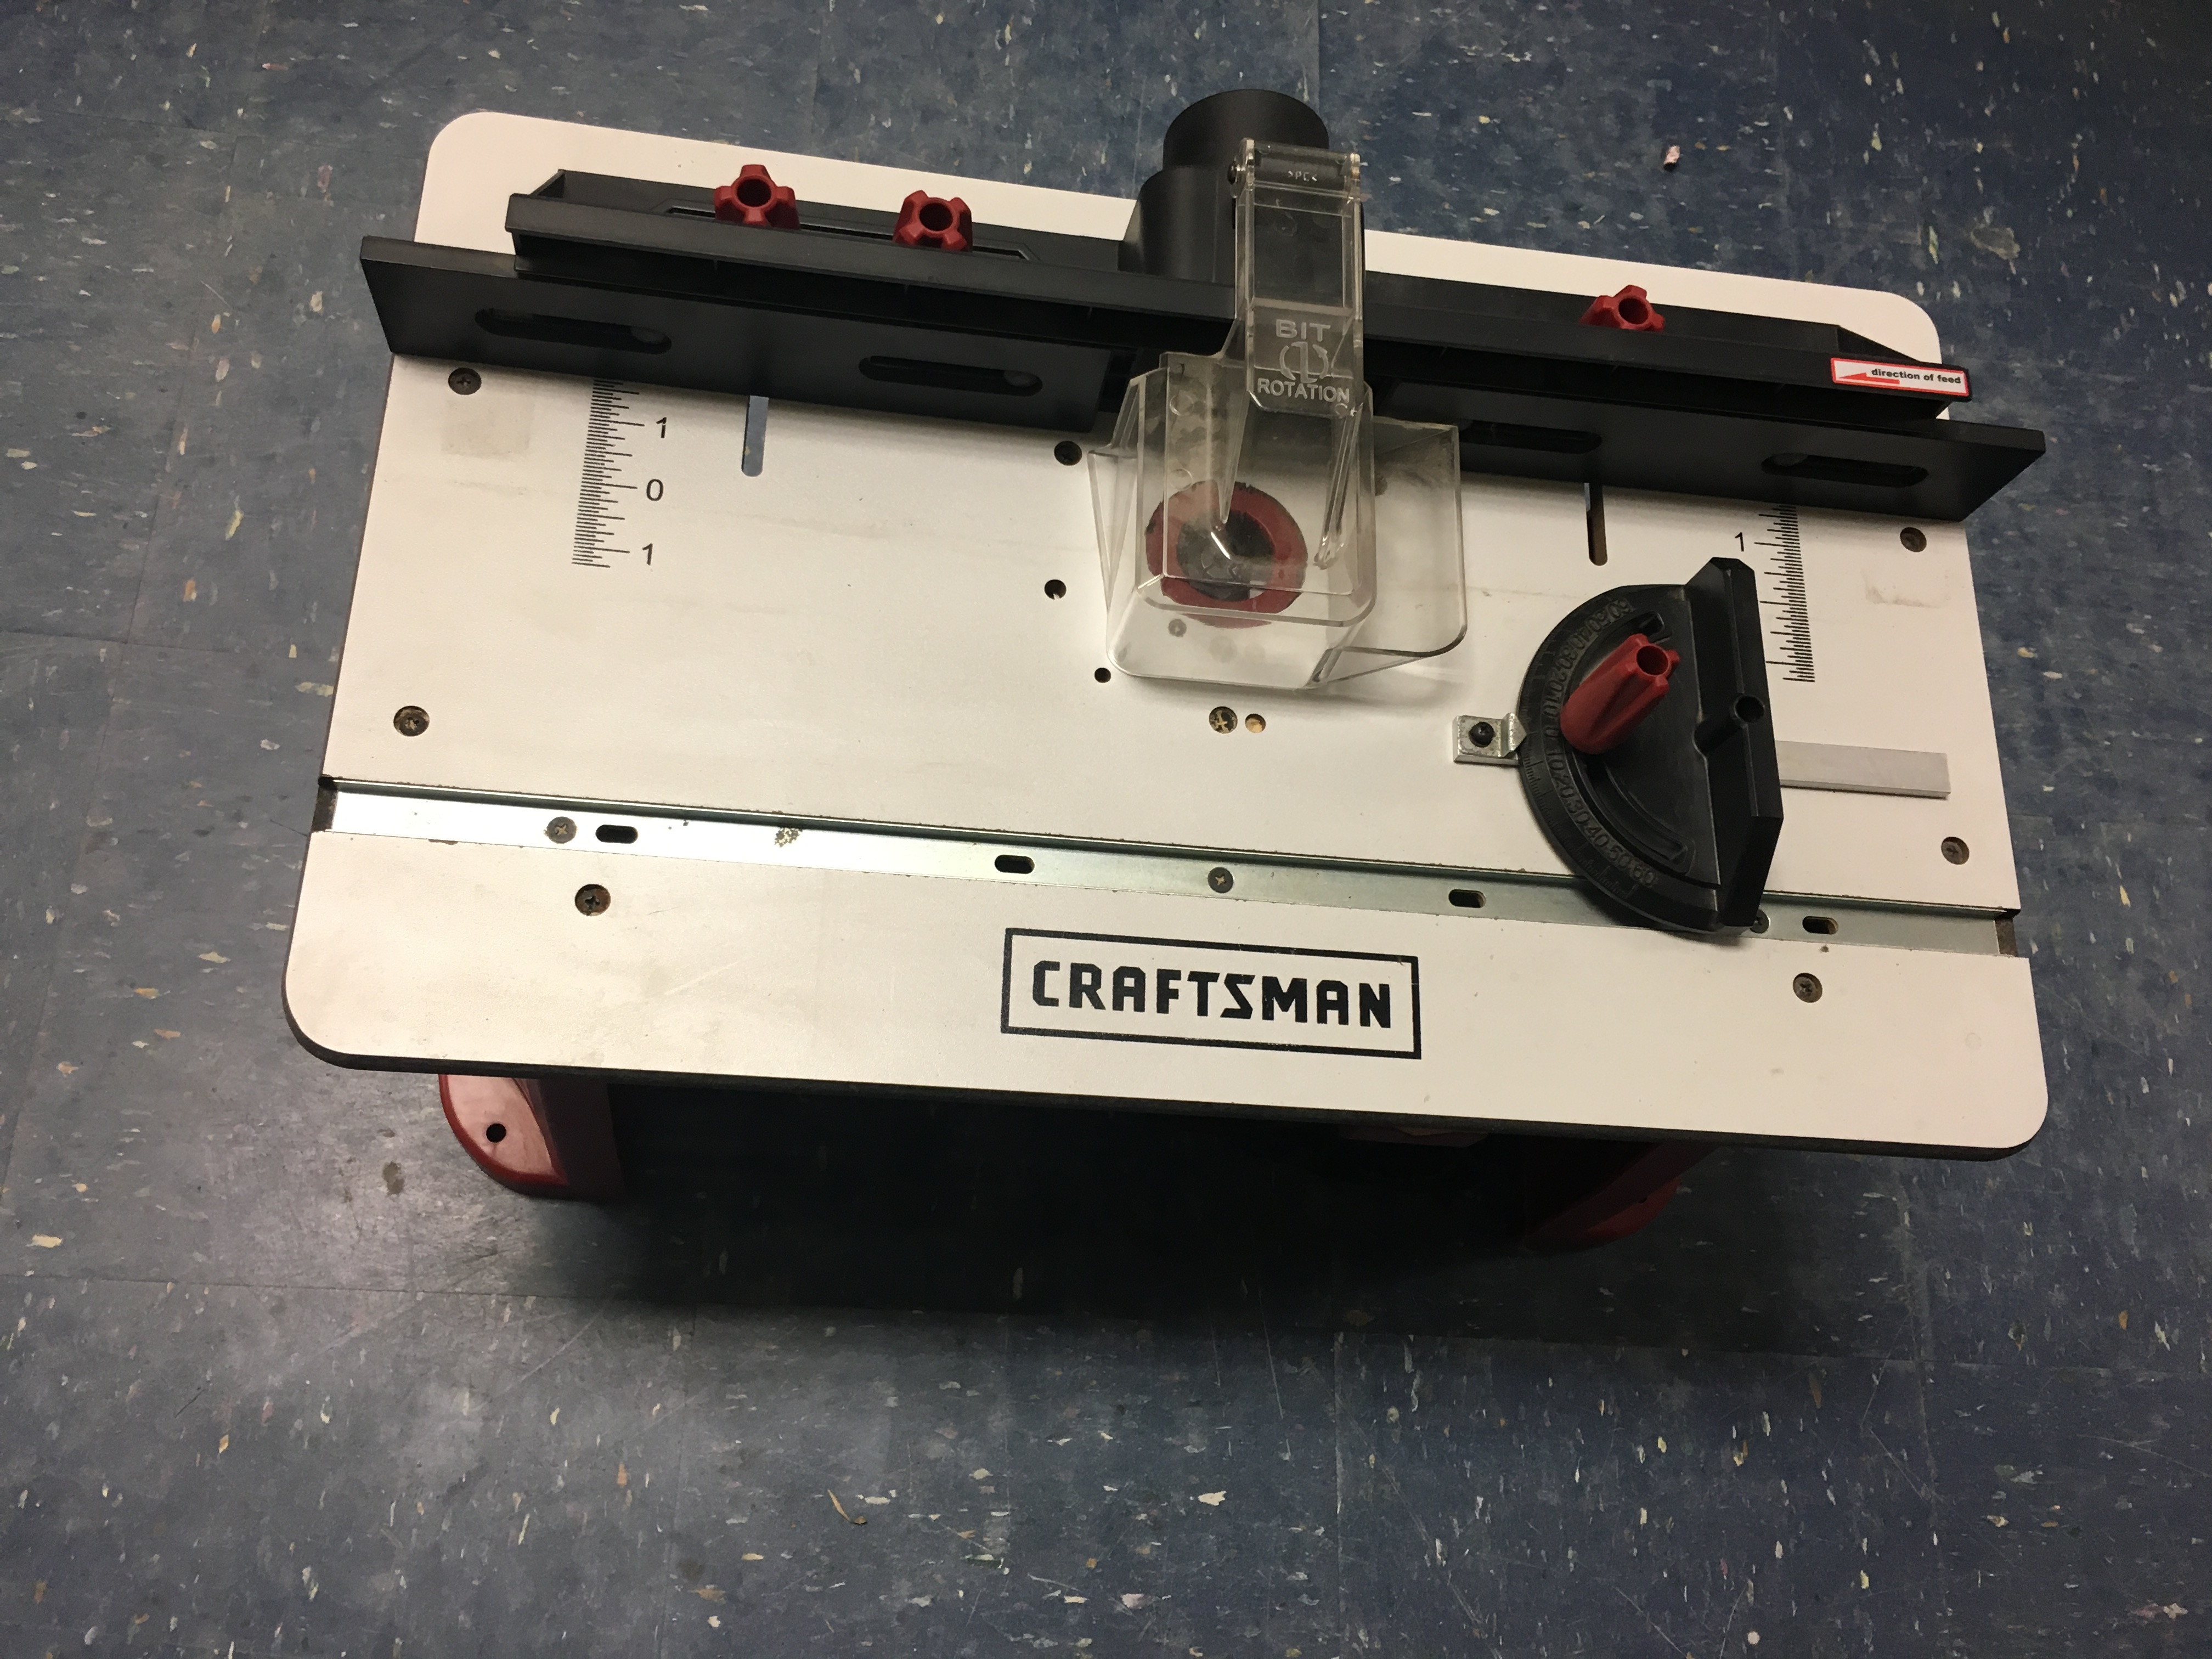 TOOLS: CRAFTSMAN - 1 3/4 - PEAK HP FIXED BASE ROUTER W/ TABLE